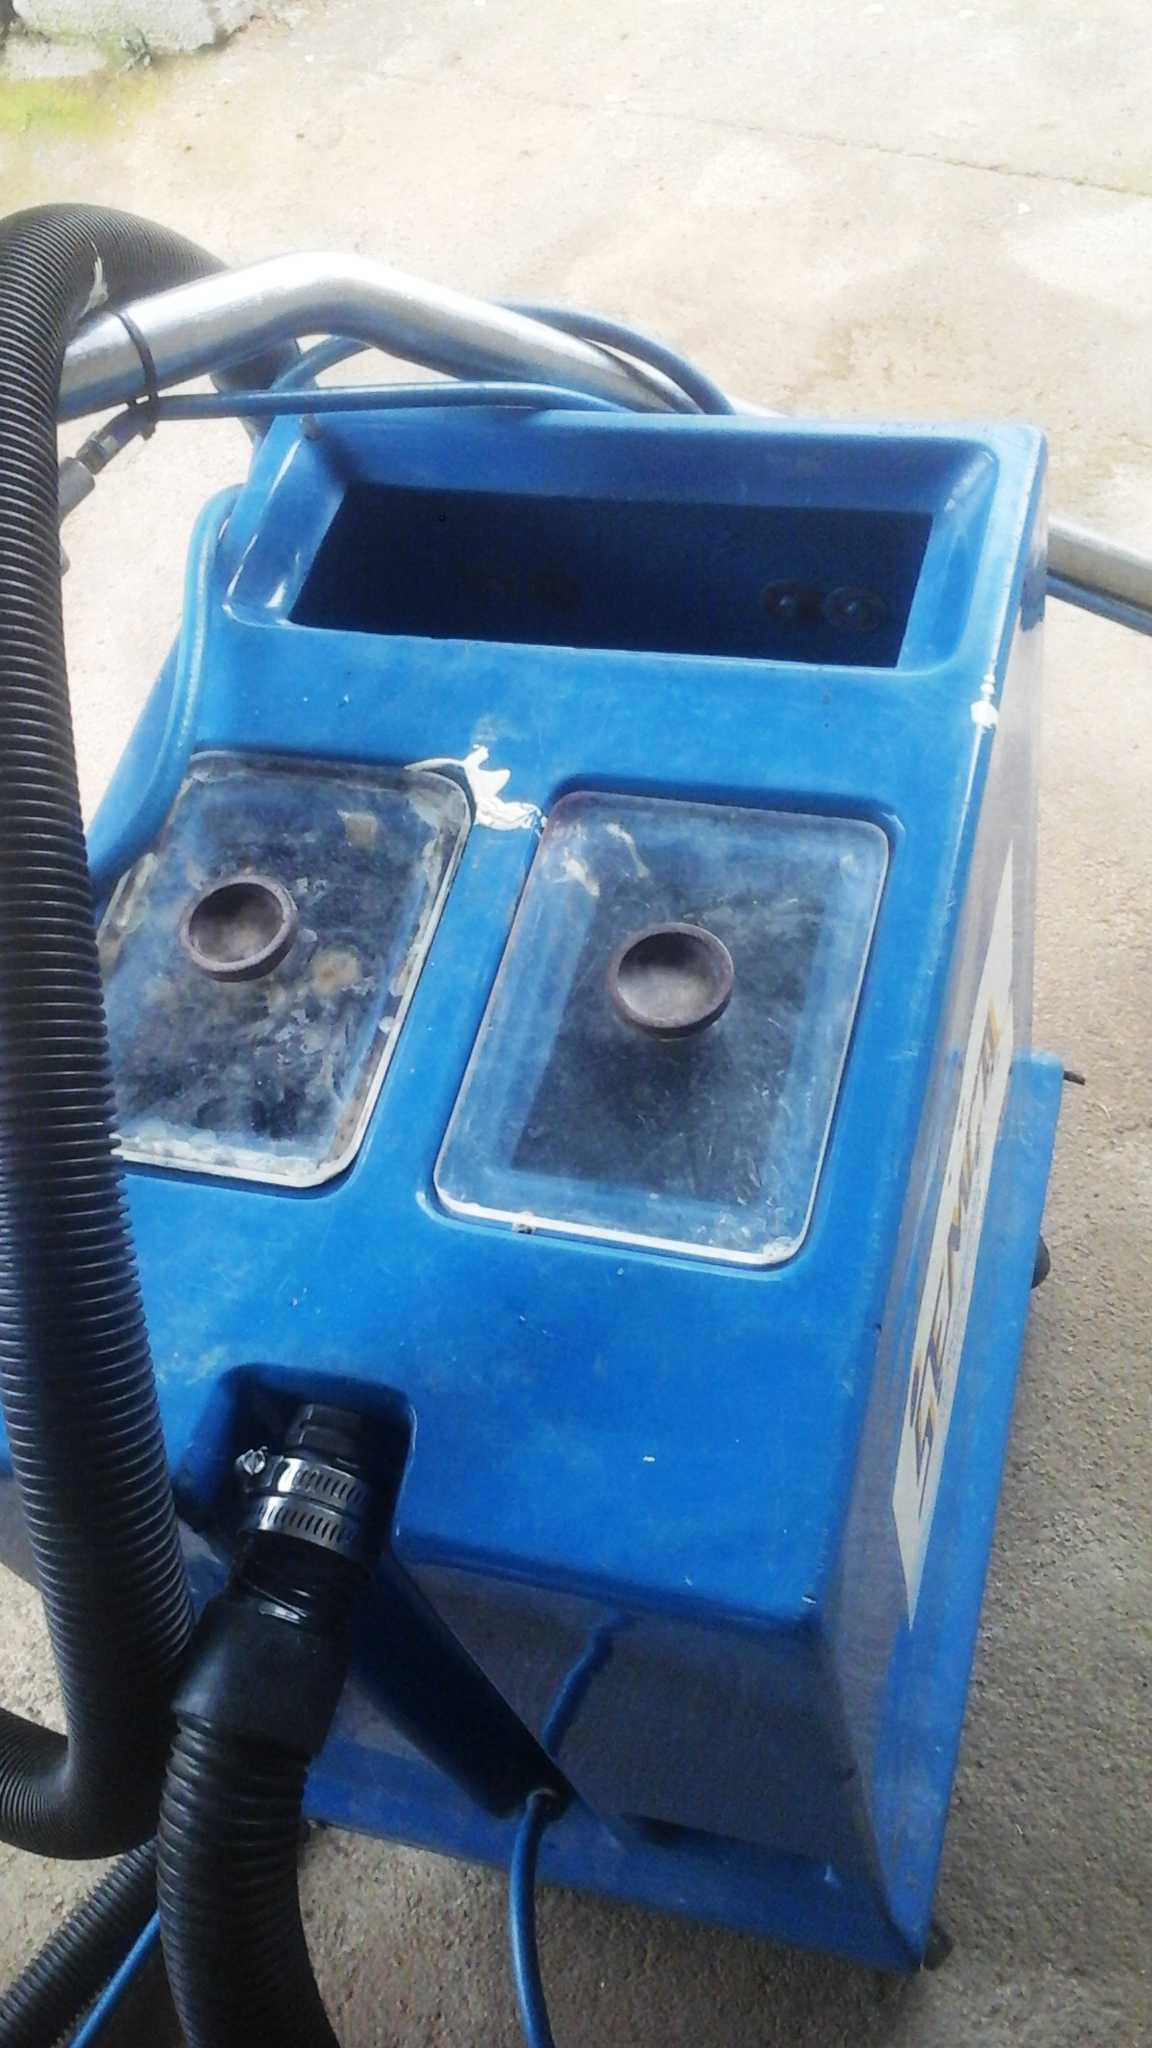 Industrial Carpet Cleaning Machine